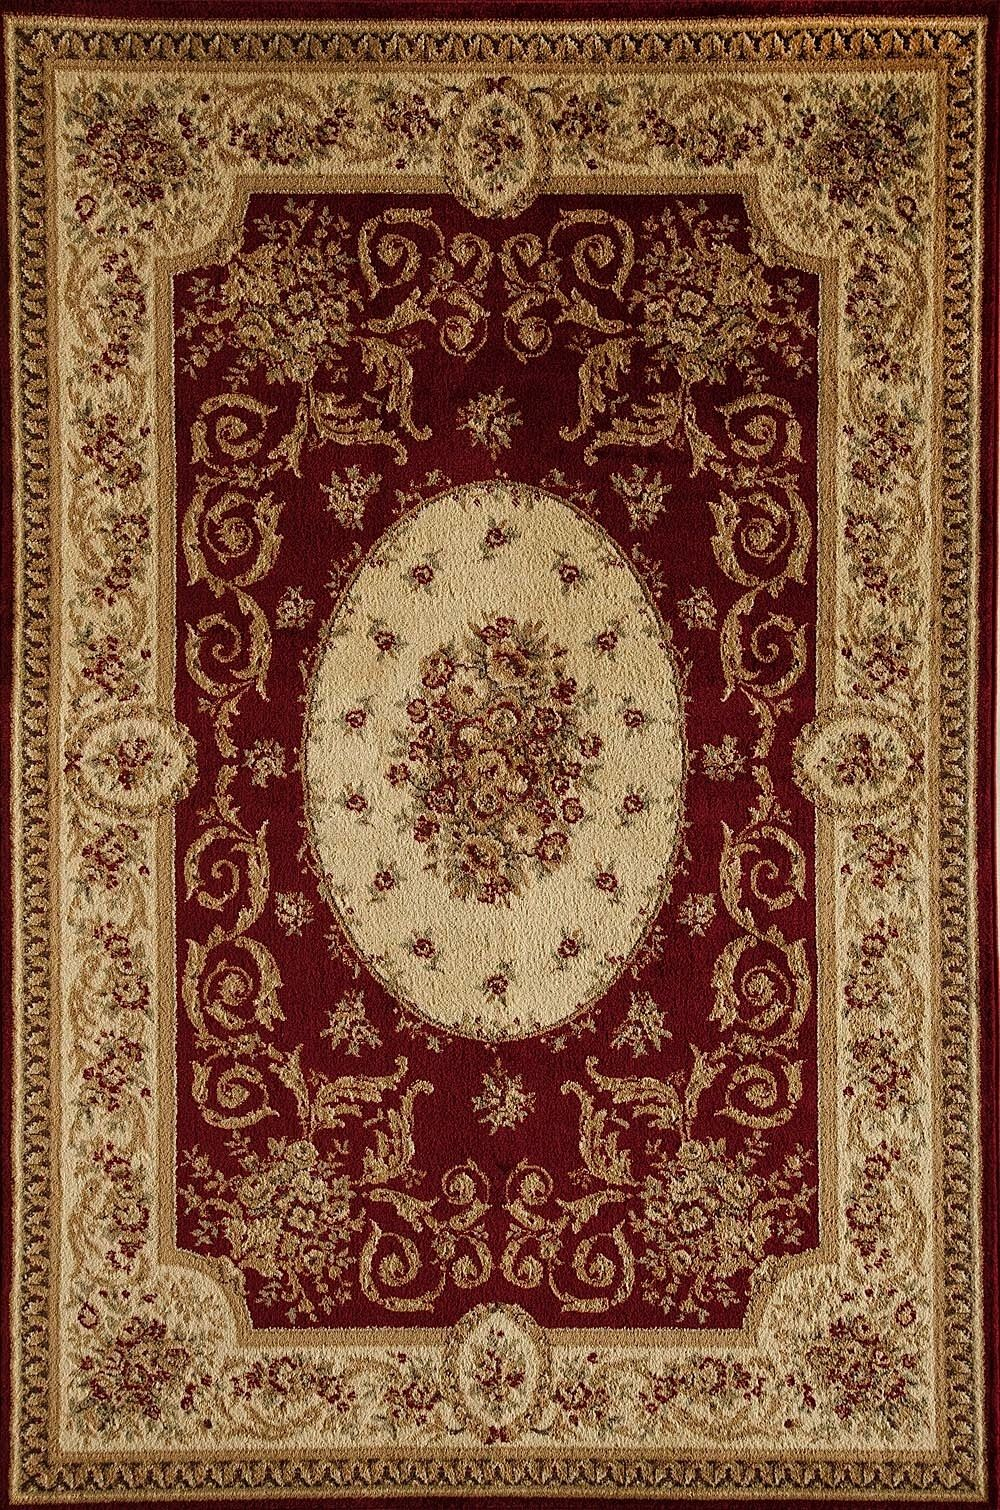 Rugs America Sorrento European Area Rug Collection